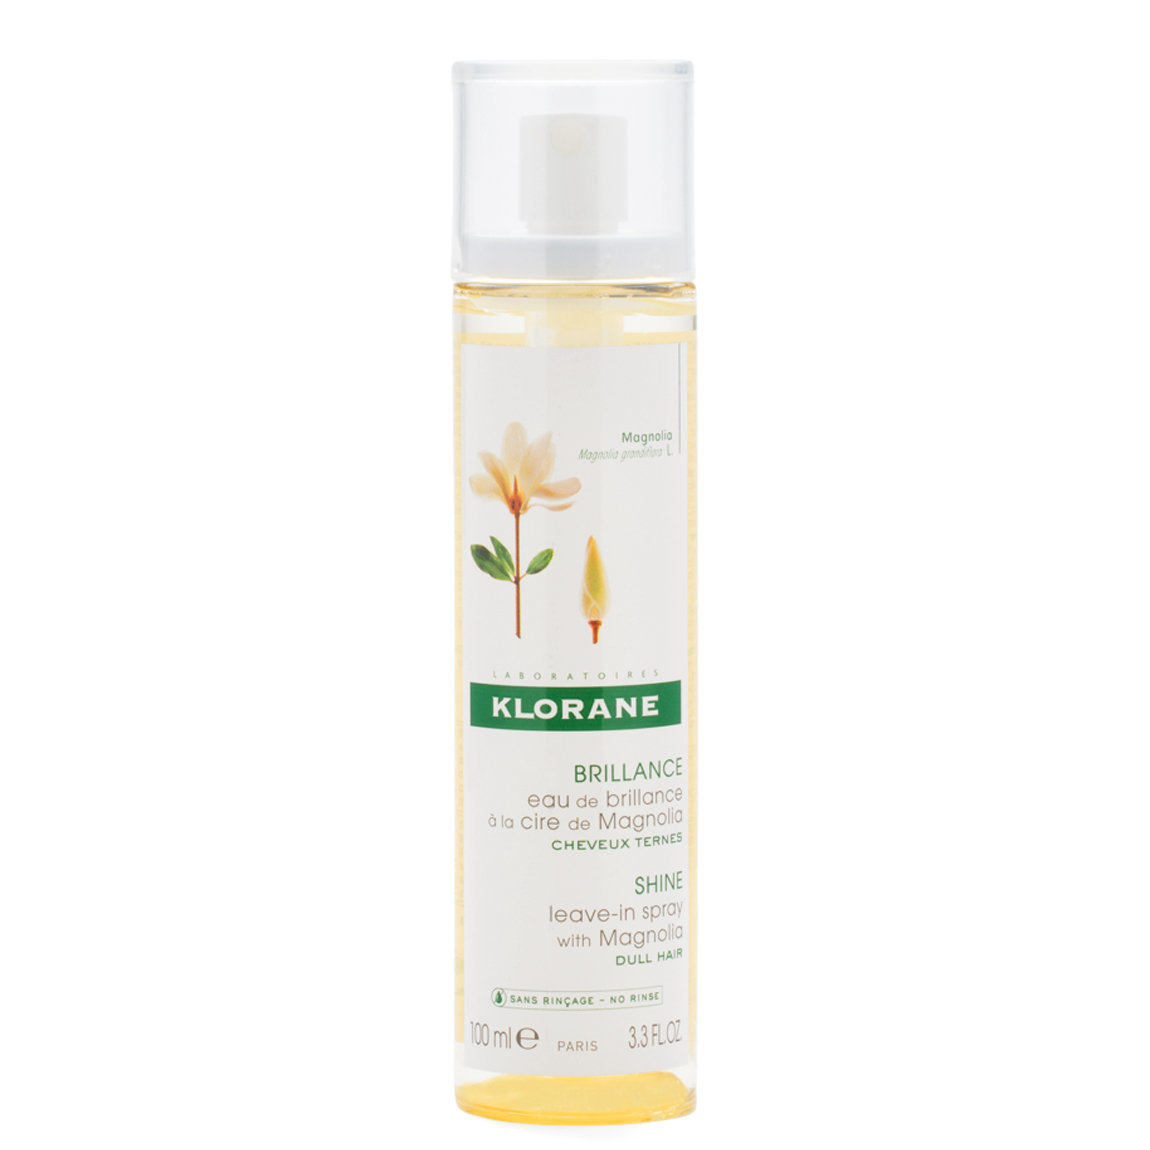 Klorane Leave-In Spray with Magnolia product swatch.